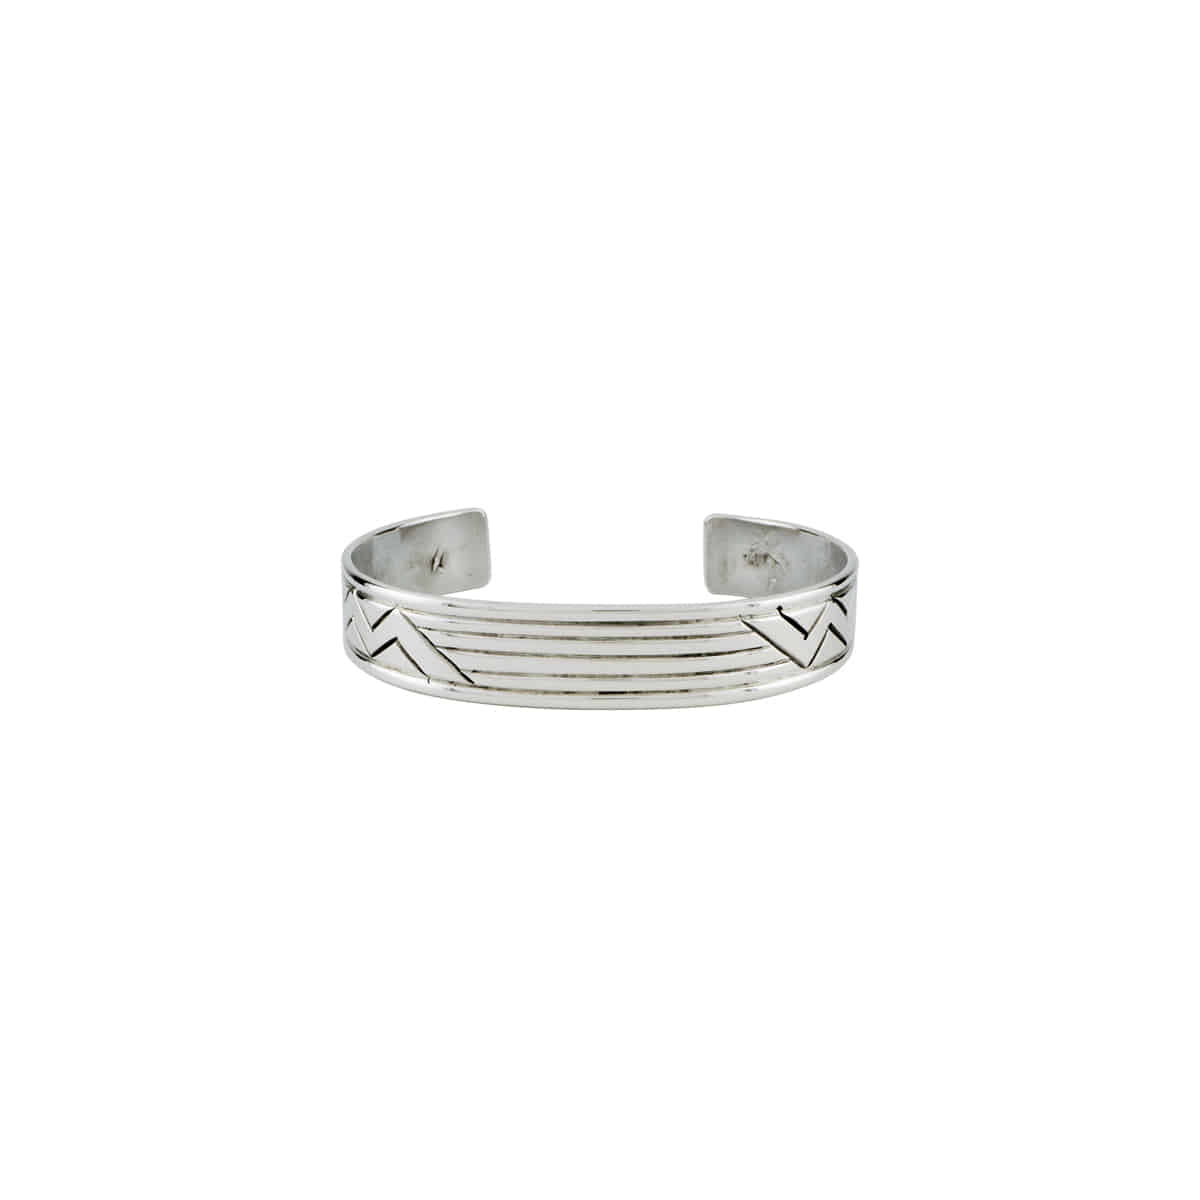 [NORTH WORKS] 900 SILVER CUFF BANGLE 'W-413'